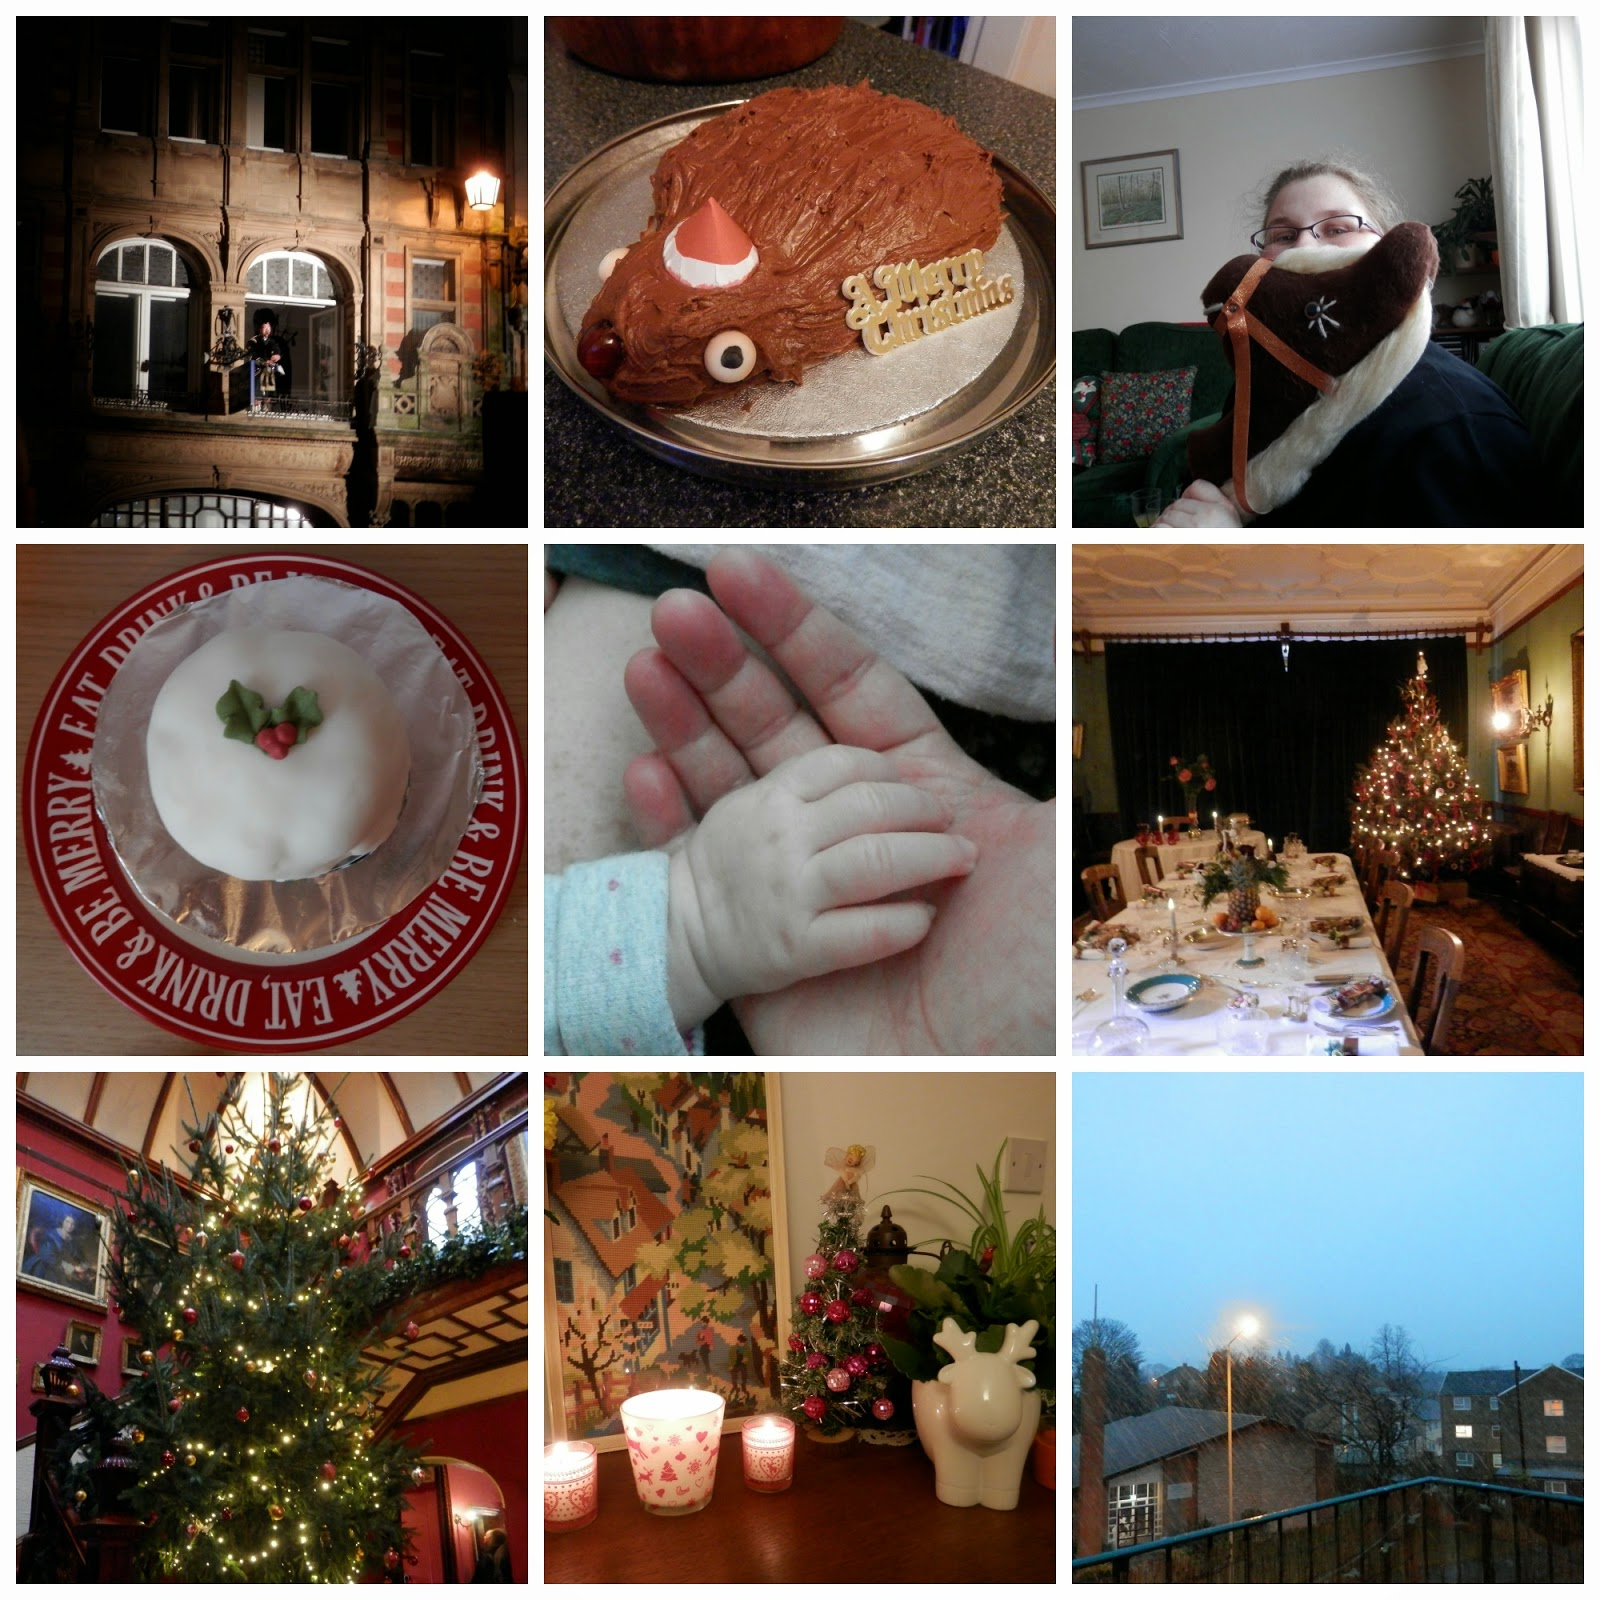 December 2014 secondhandsusie.blogspot.co.uk